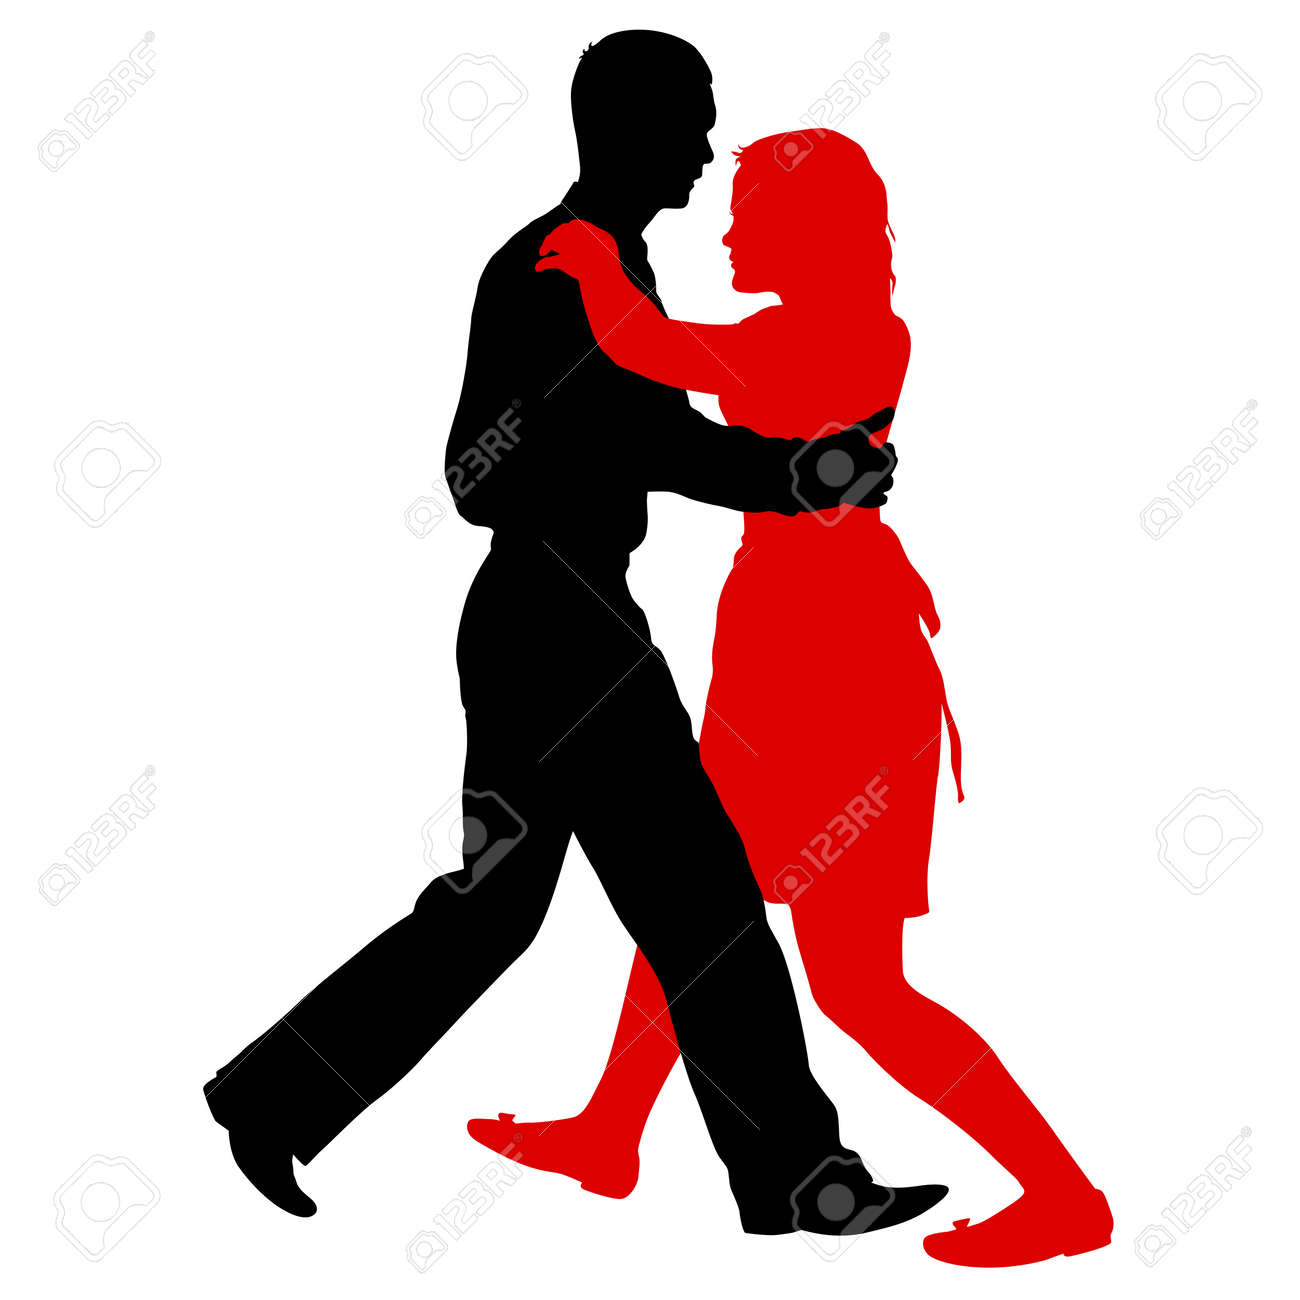 Black silhouettes dancing man and woman on white background. - 125805724